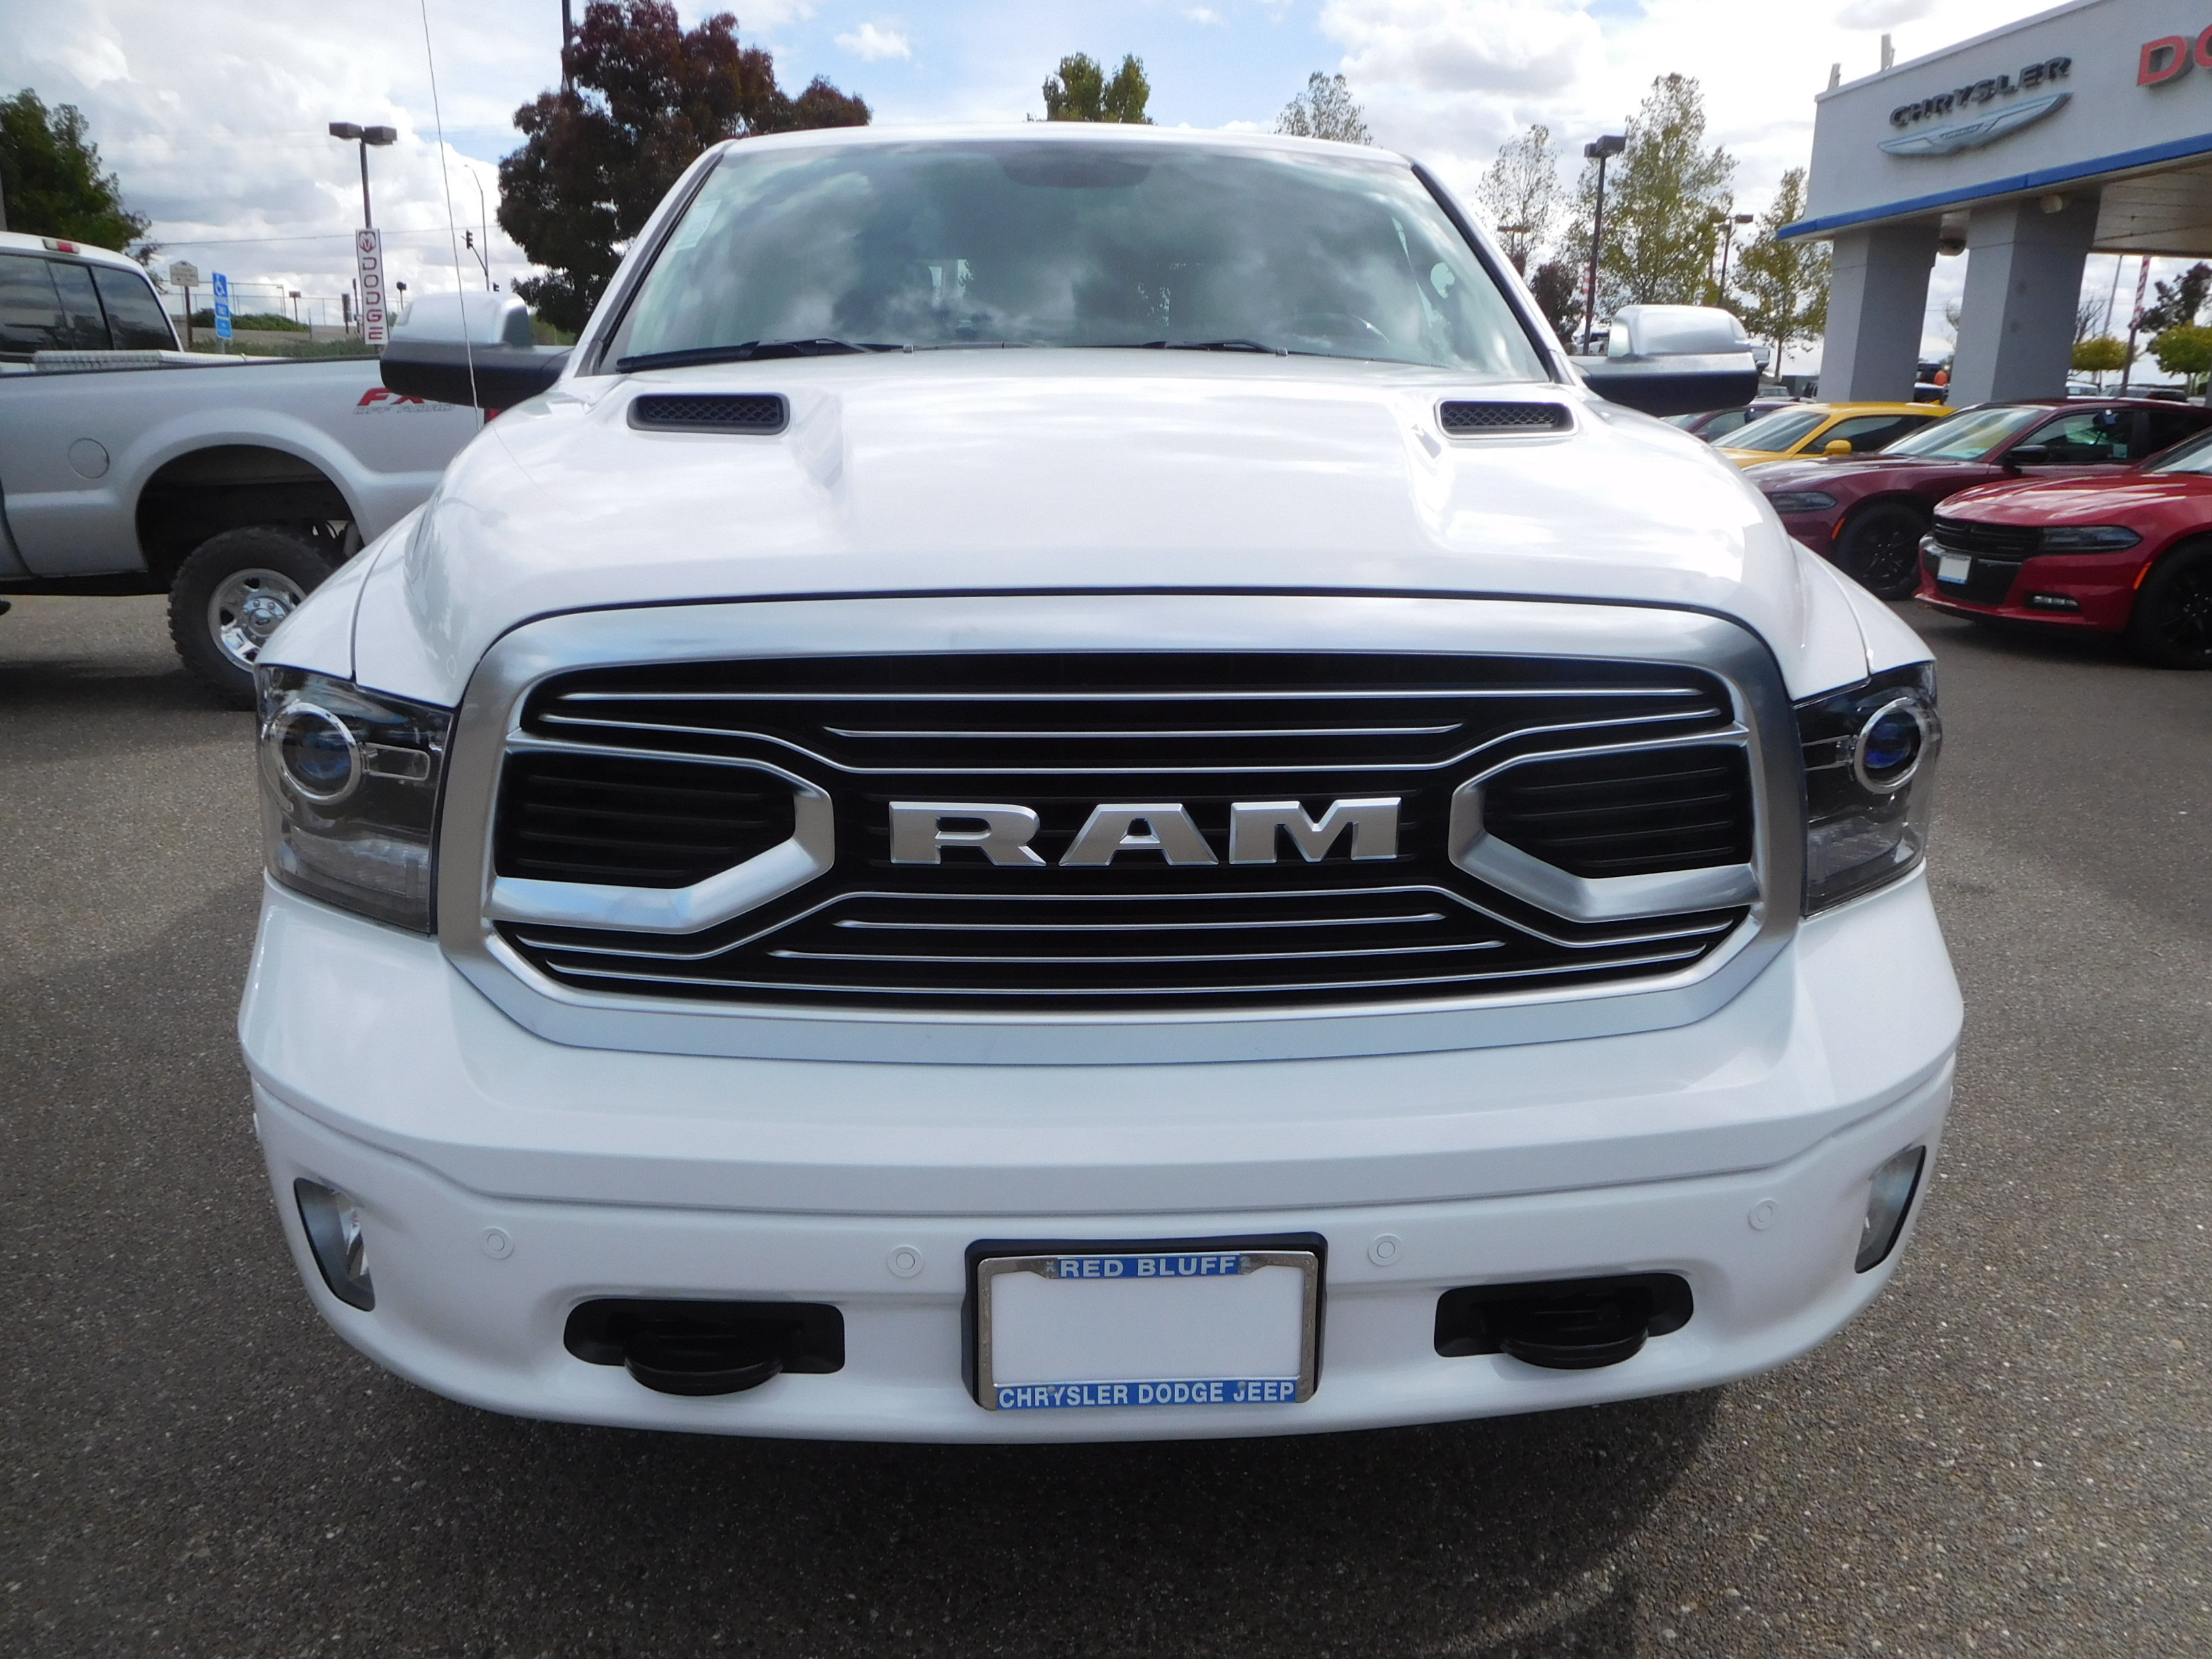 2018 Ram 1500 Crew Cab 4x4, Pickup #15386 - photo 4